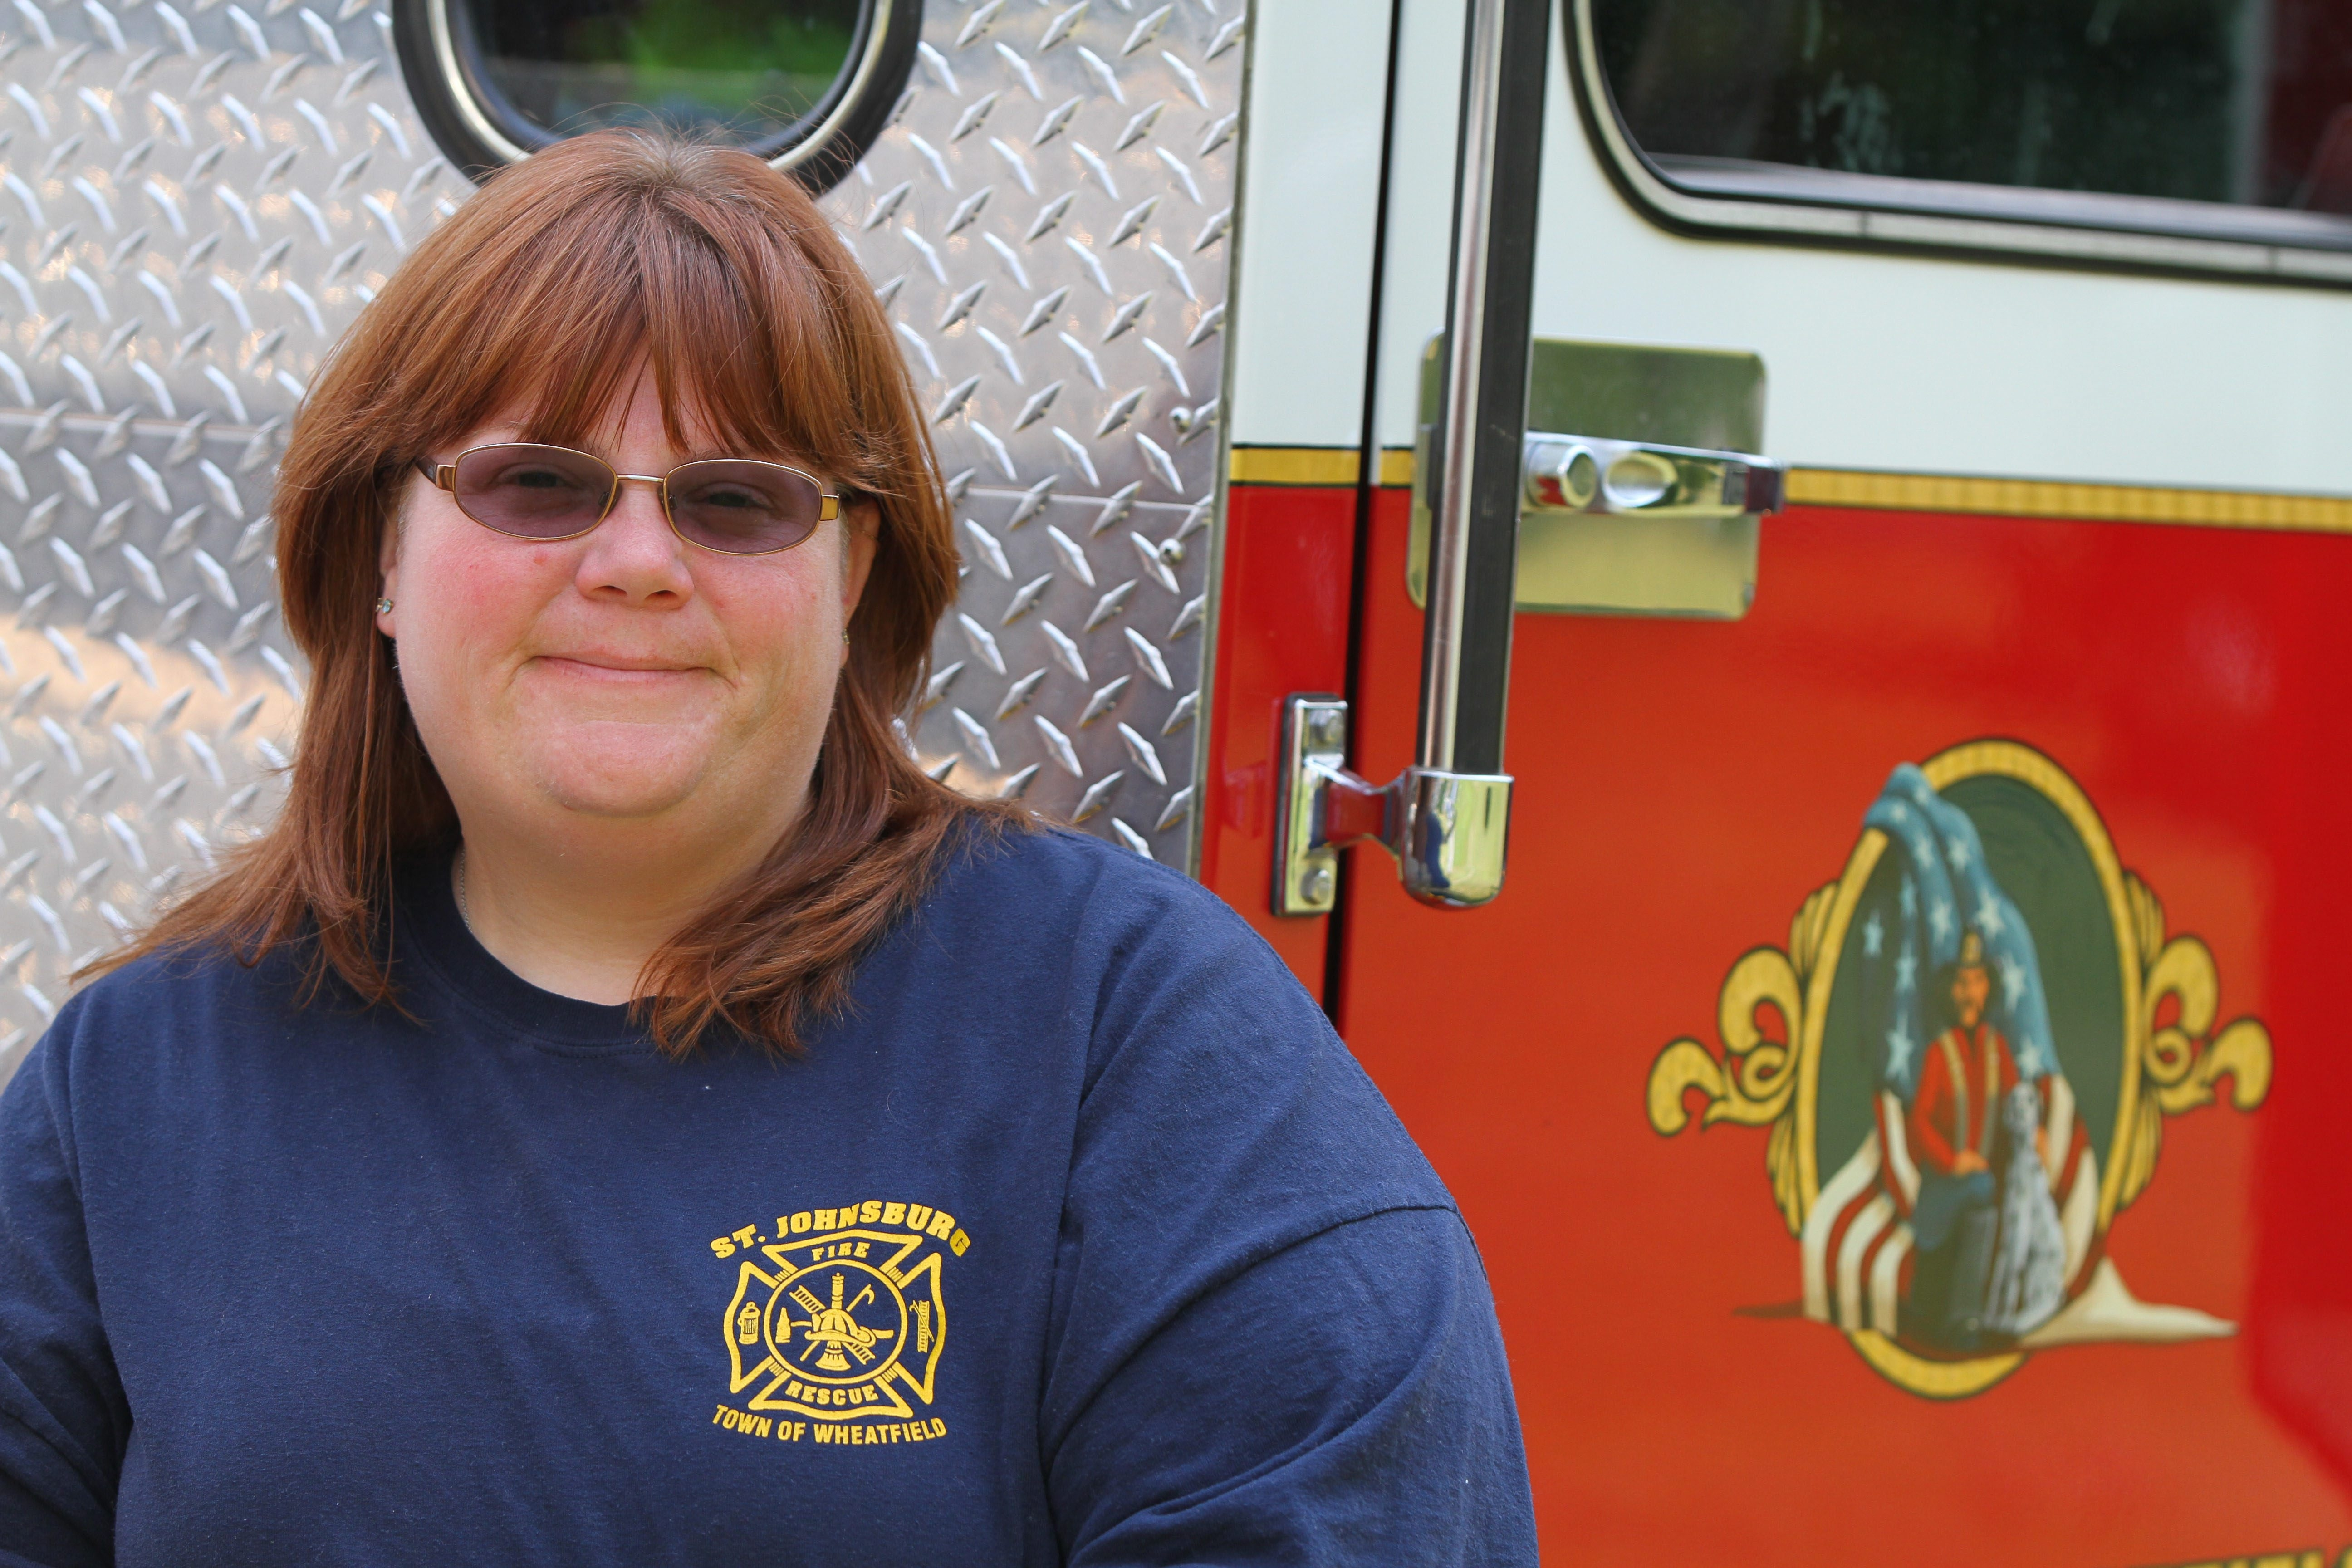 Wendi Walker has been a firefighter for 20 years.